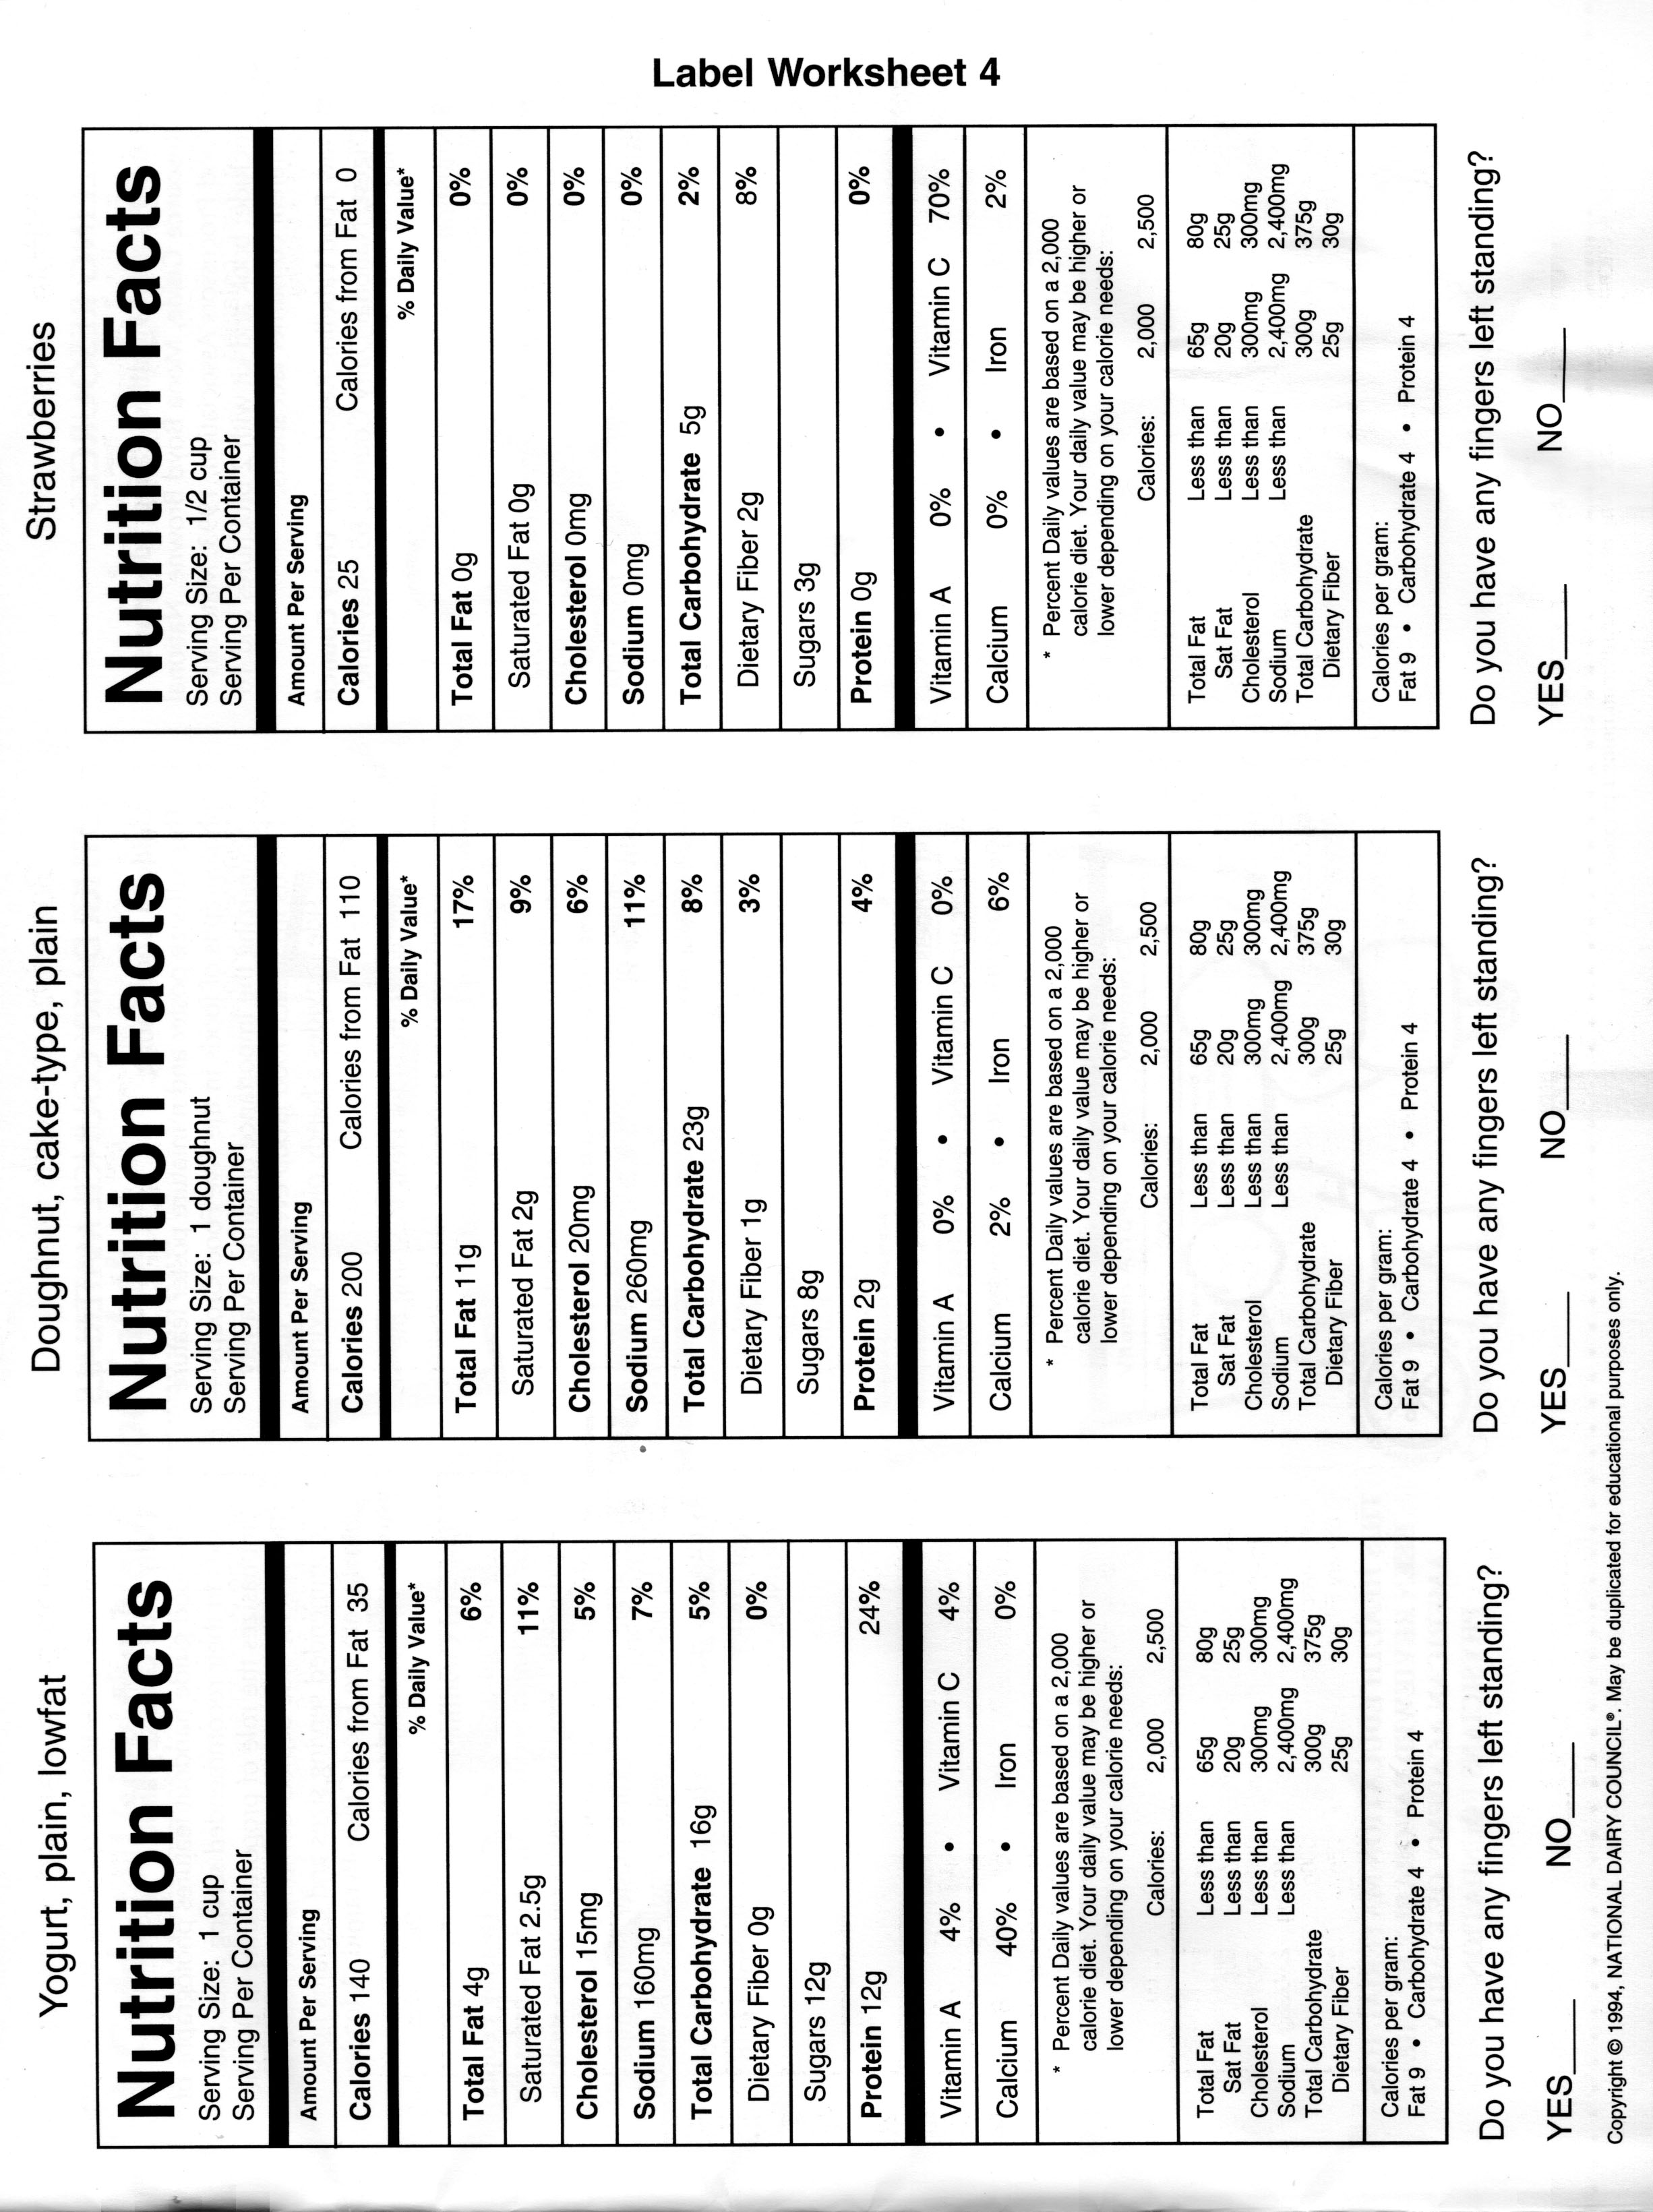 Worksheets Nutrition Label Worksheet food label worksheet targer golden dragon co worksheet